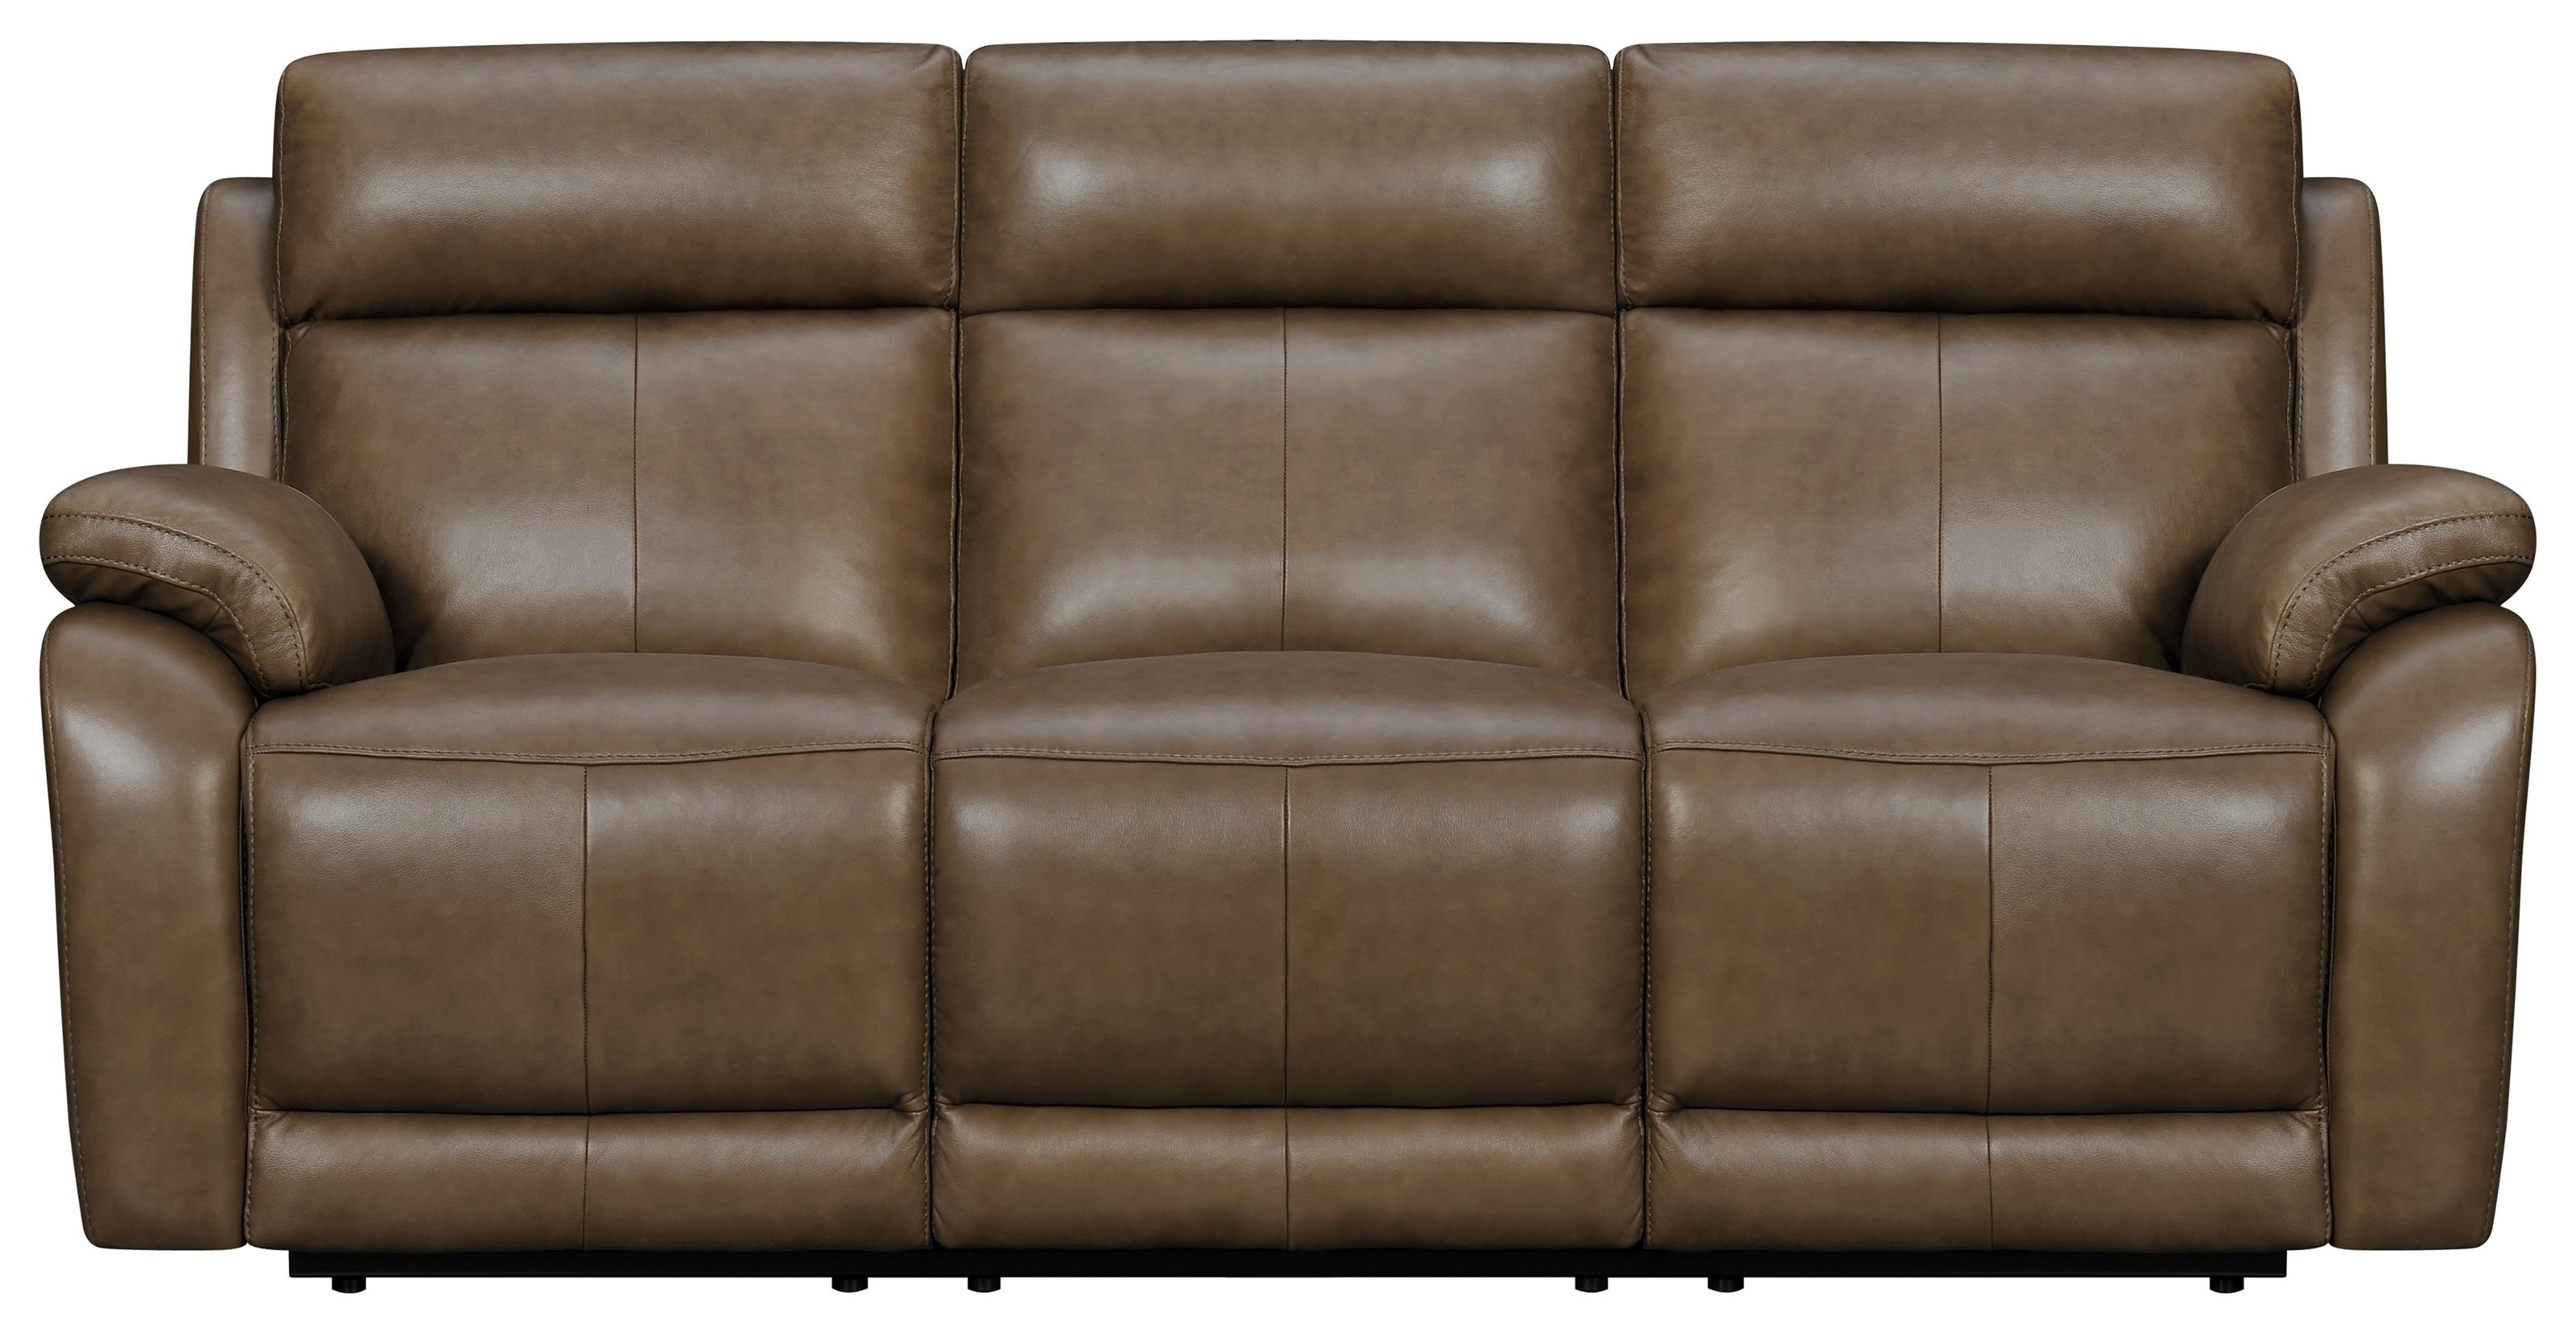 32956 Motion Sofa at Bennett's Furniture and Mattresses